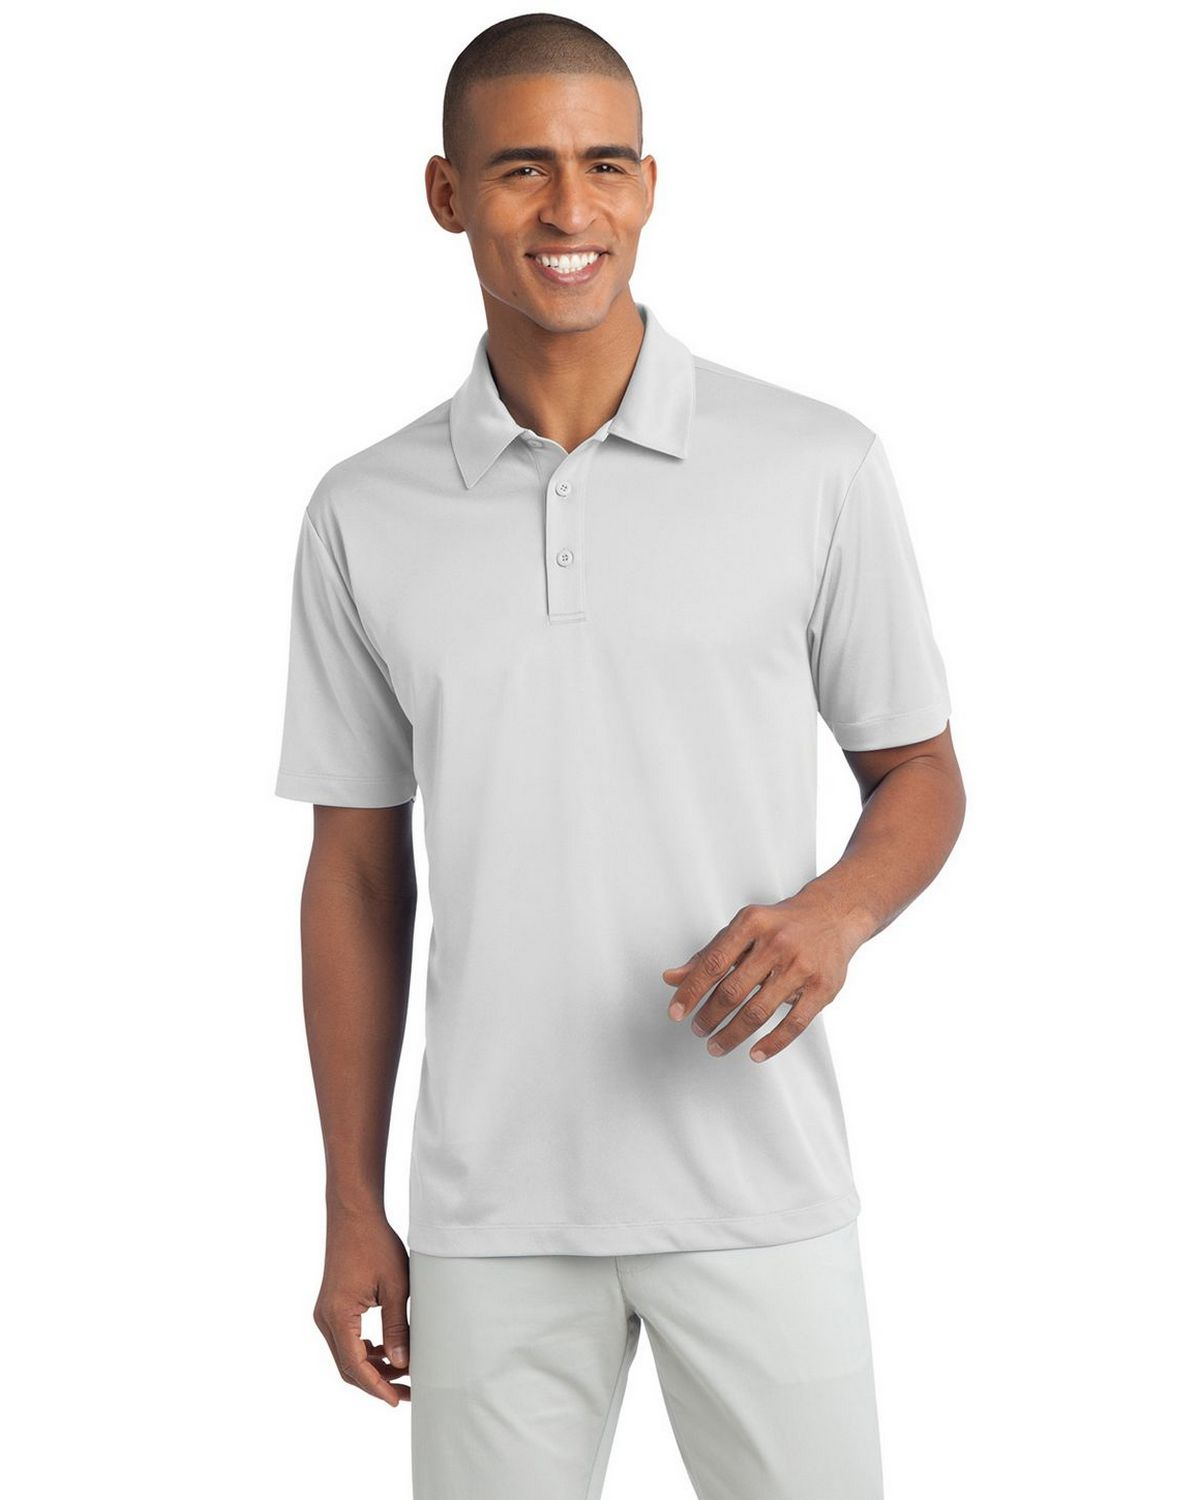 bd4ca669d54 Buy Port Authority K540 Silk Touch Performance Polo